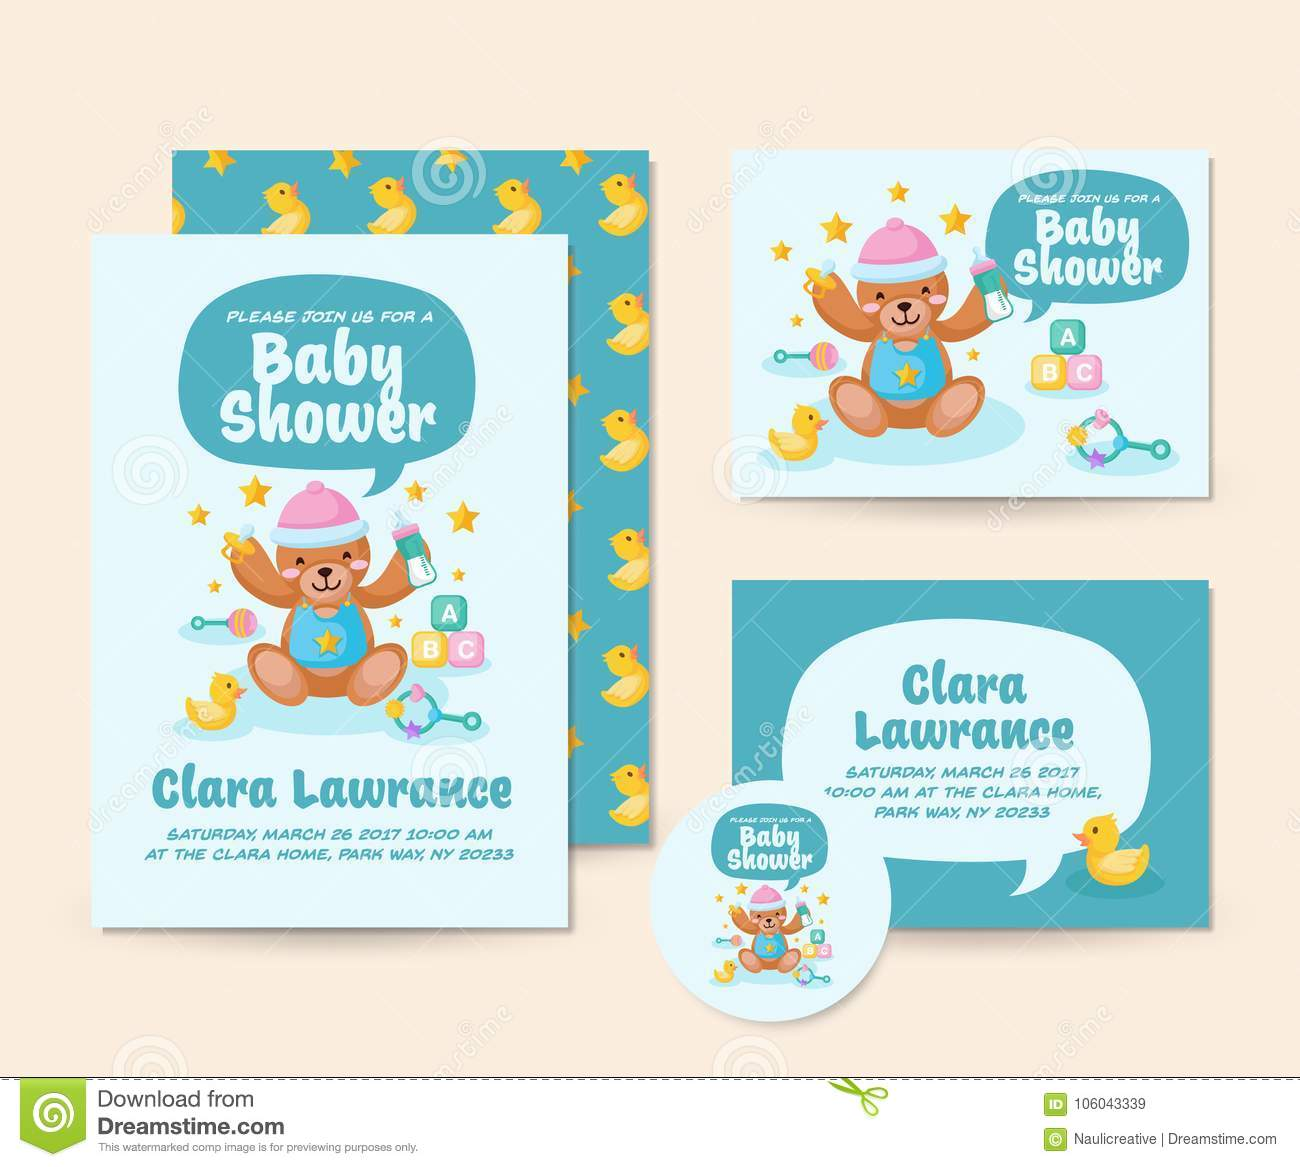 e3396ad0247c Cute Teddy Bear Theme Baby Shower Invitation Card Illustration ...